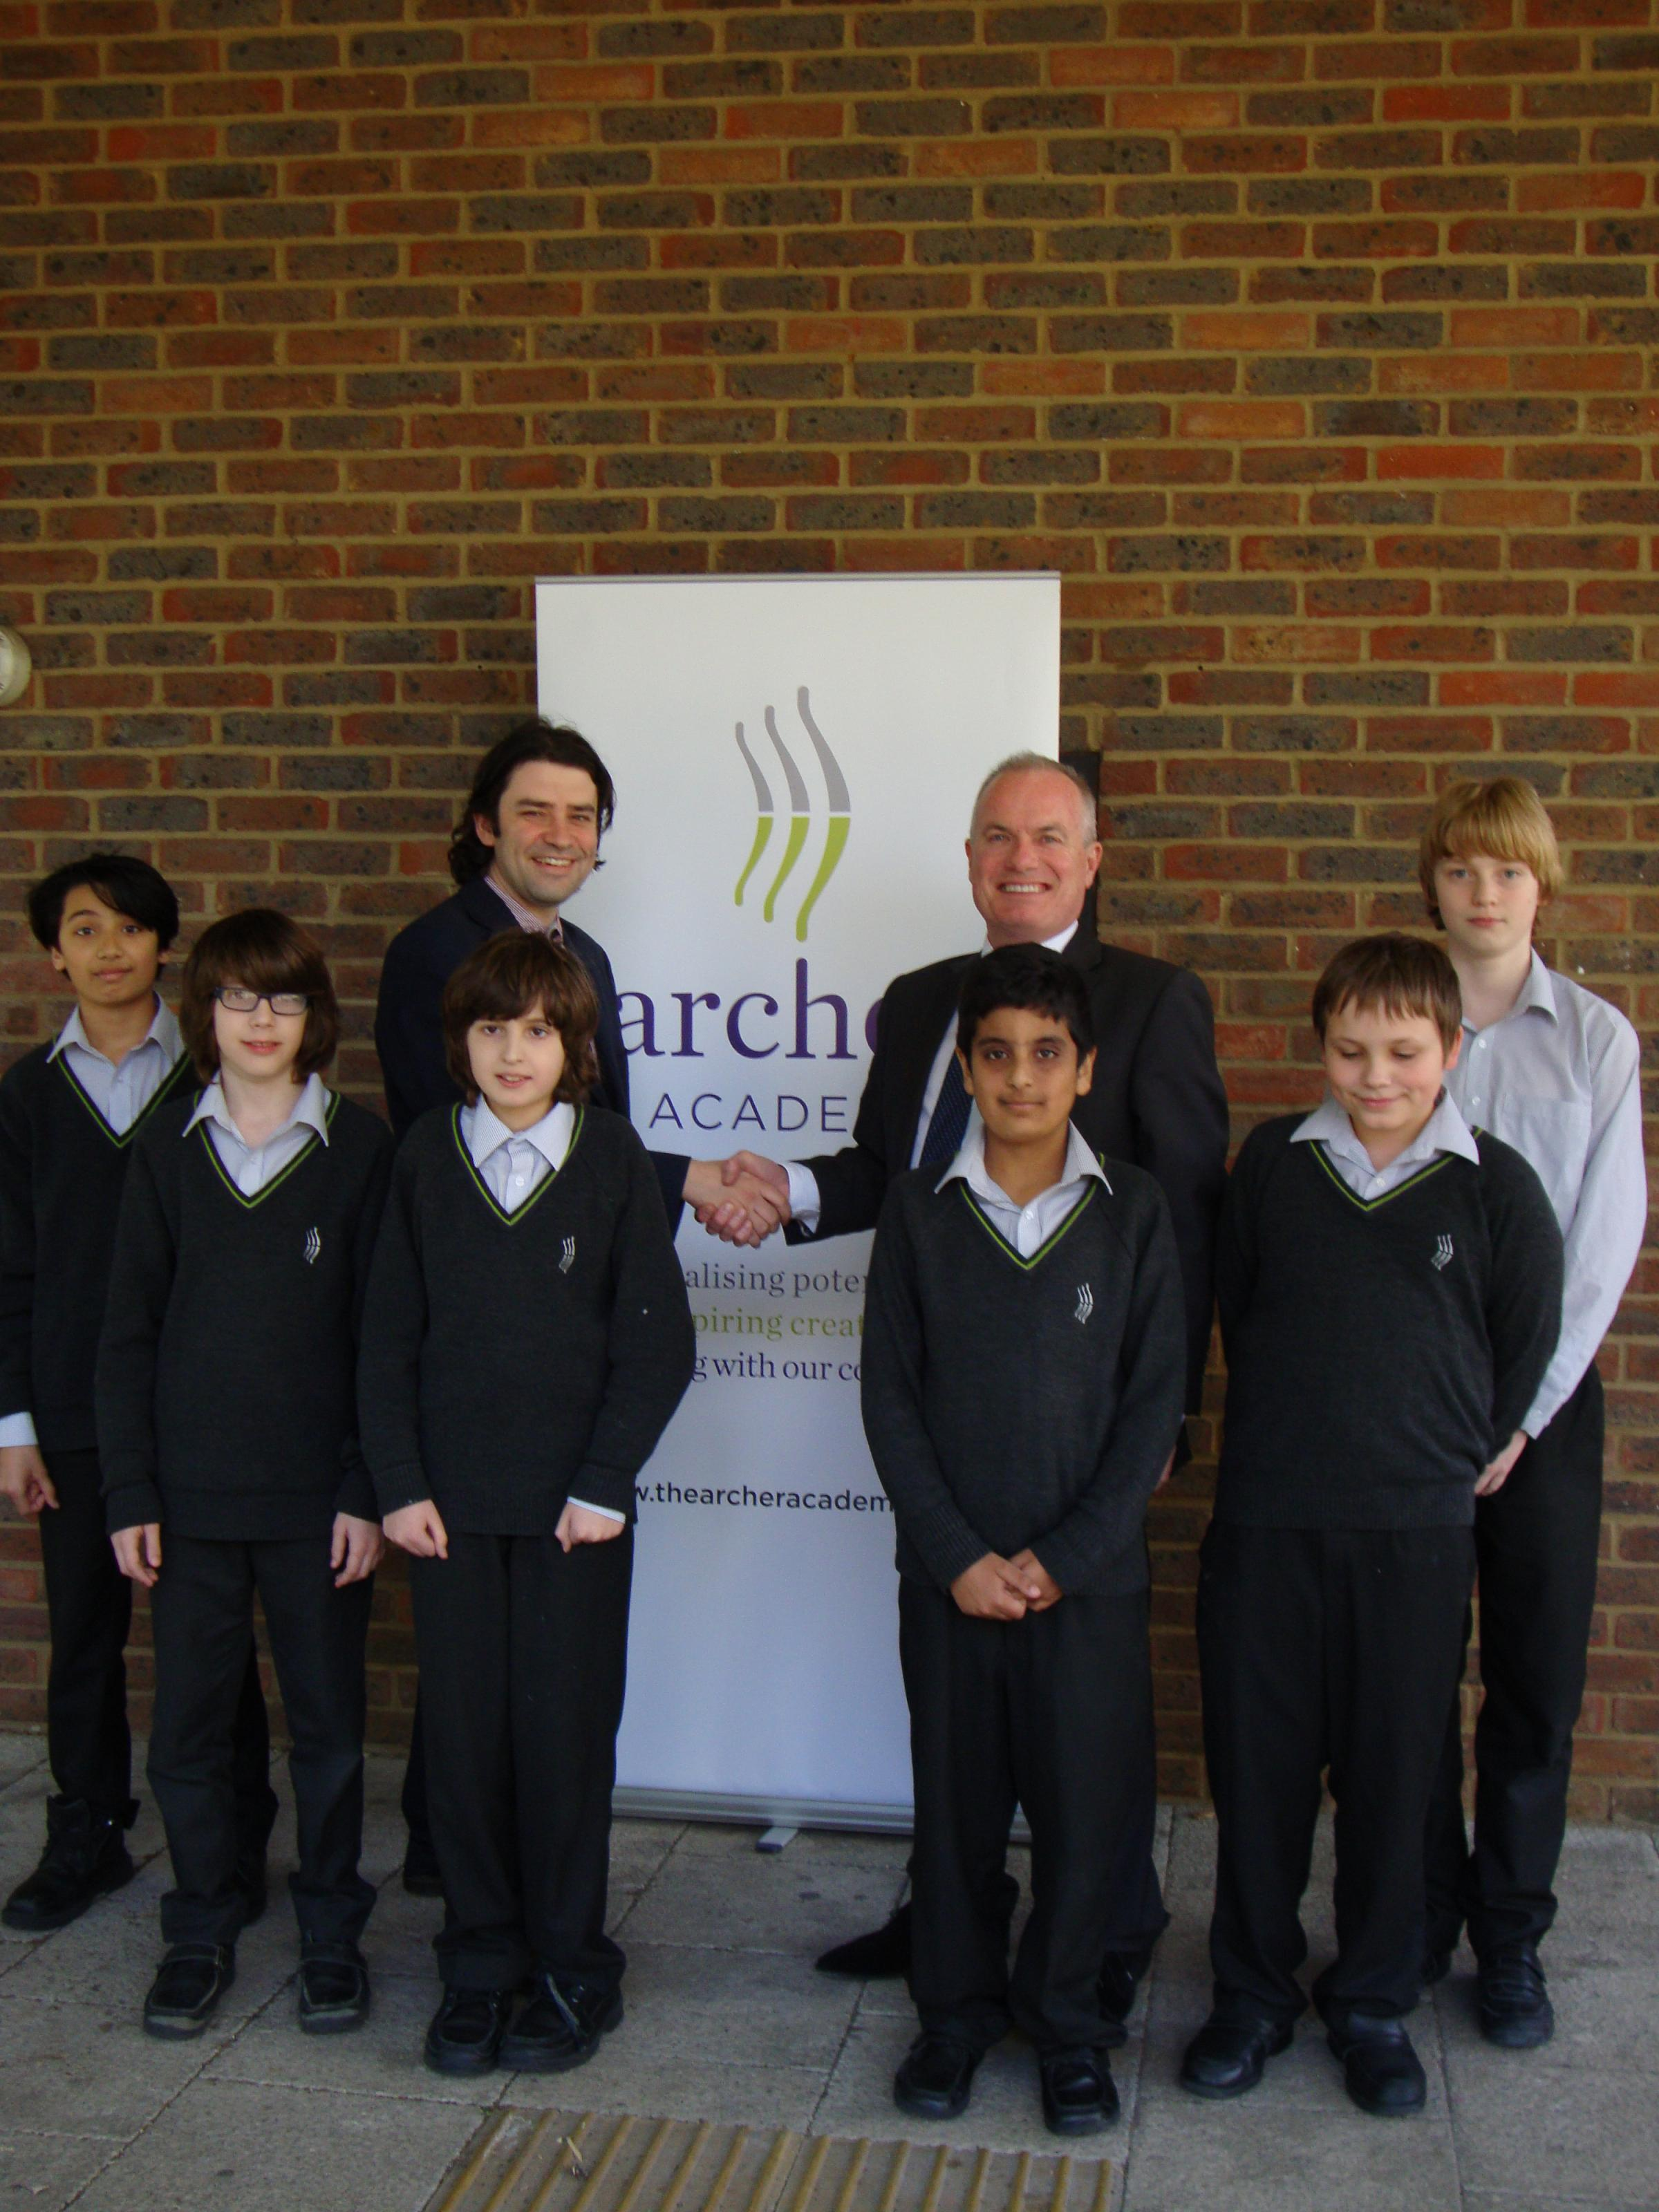 The Archer Academy will receive £10,000 from GLH to buy new books for its library.